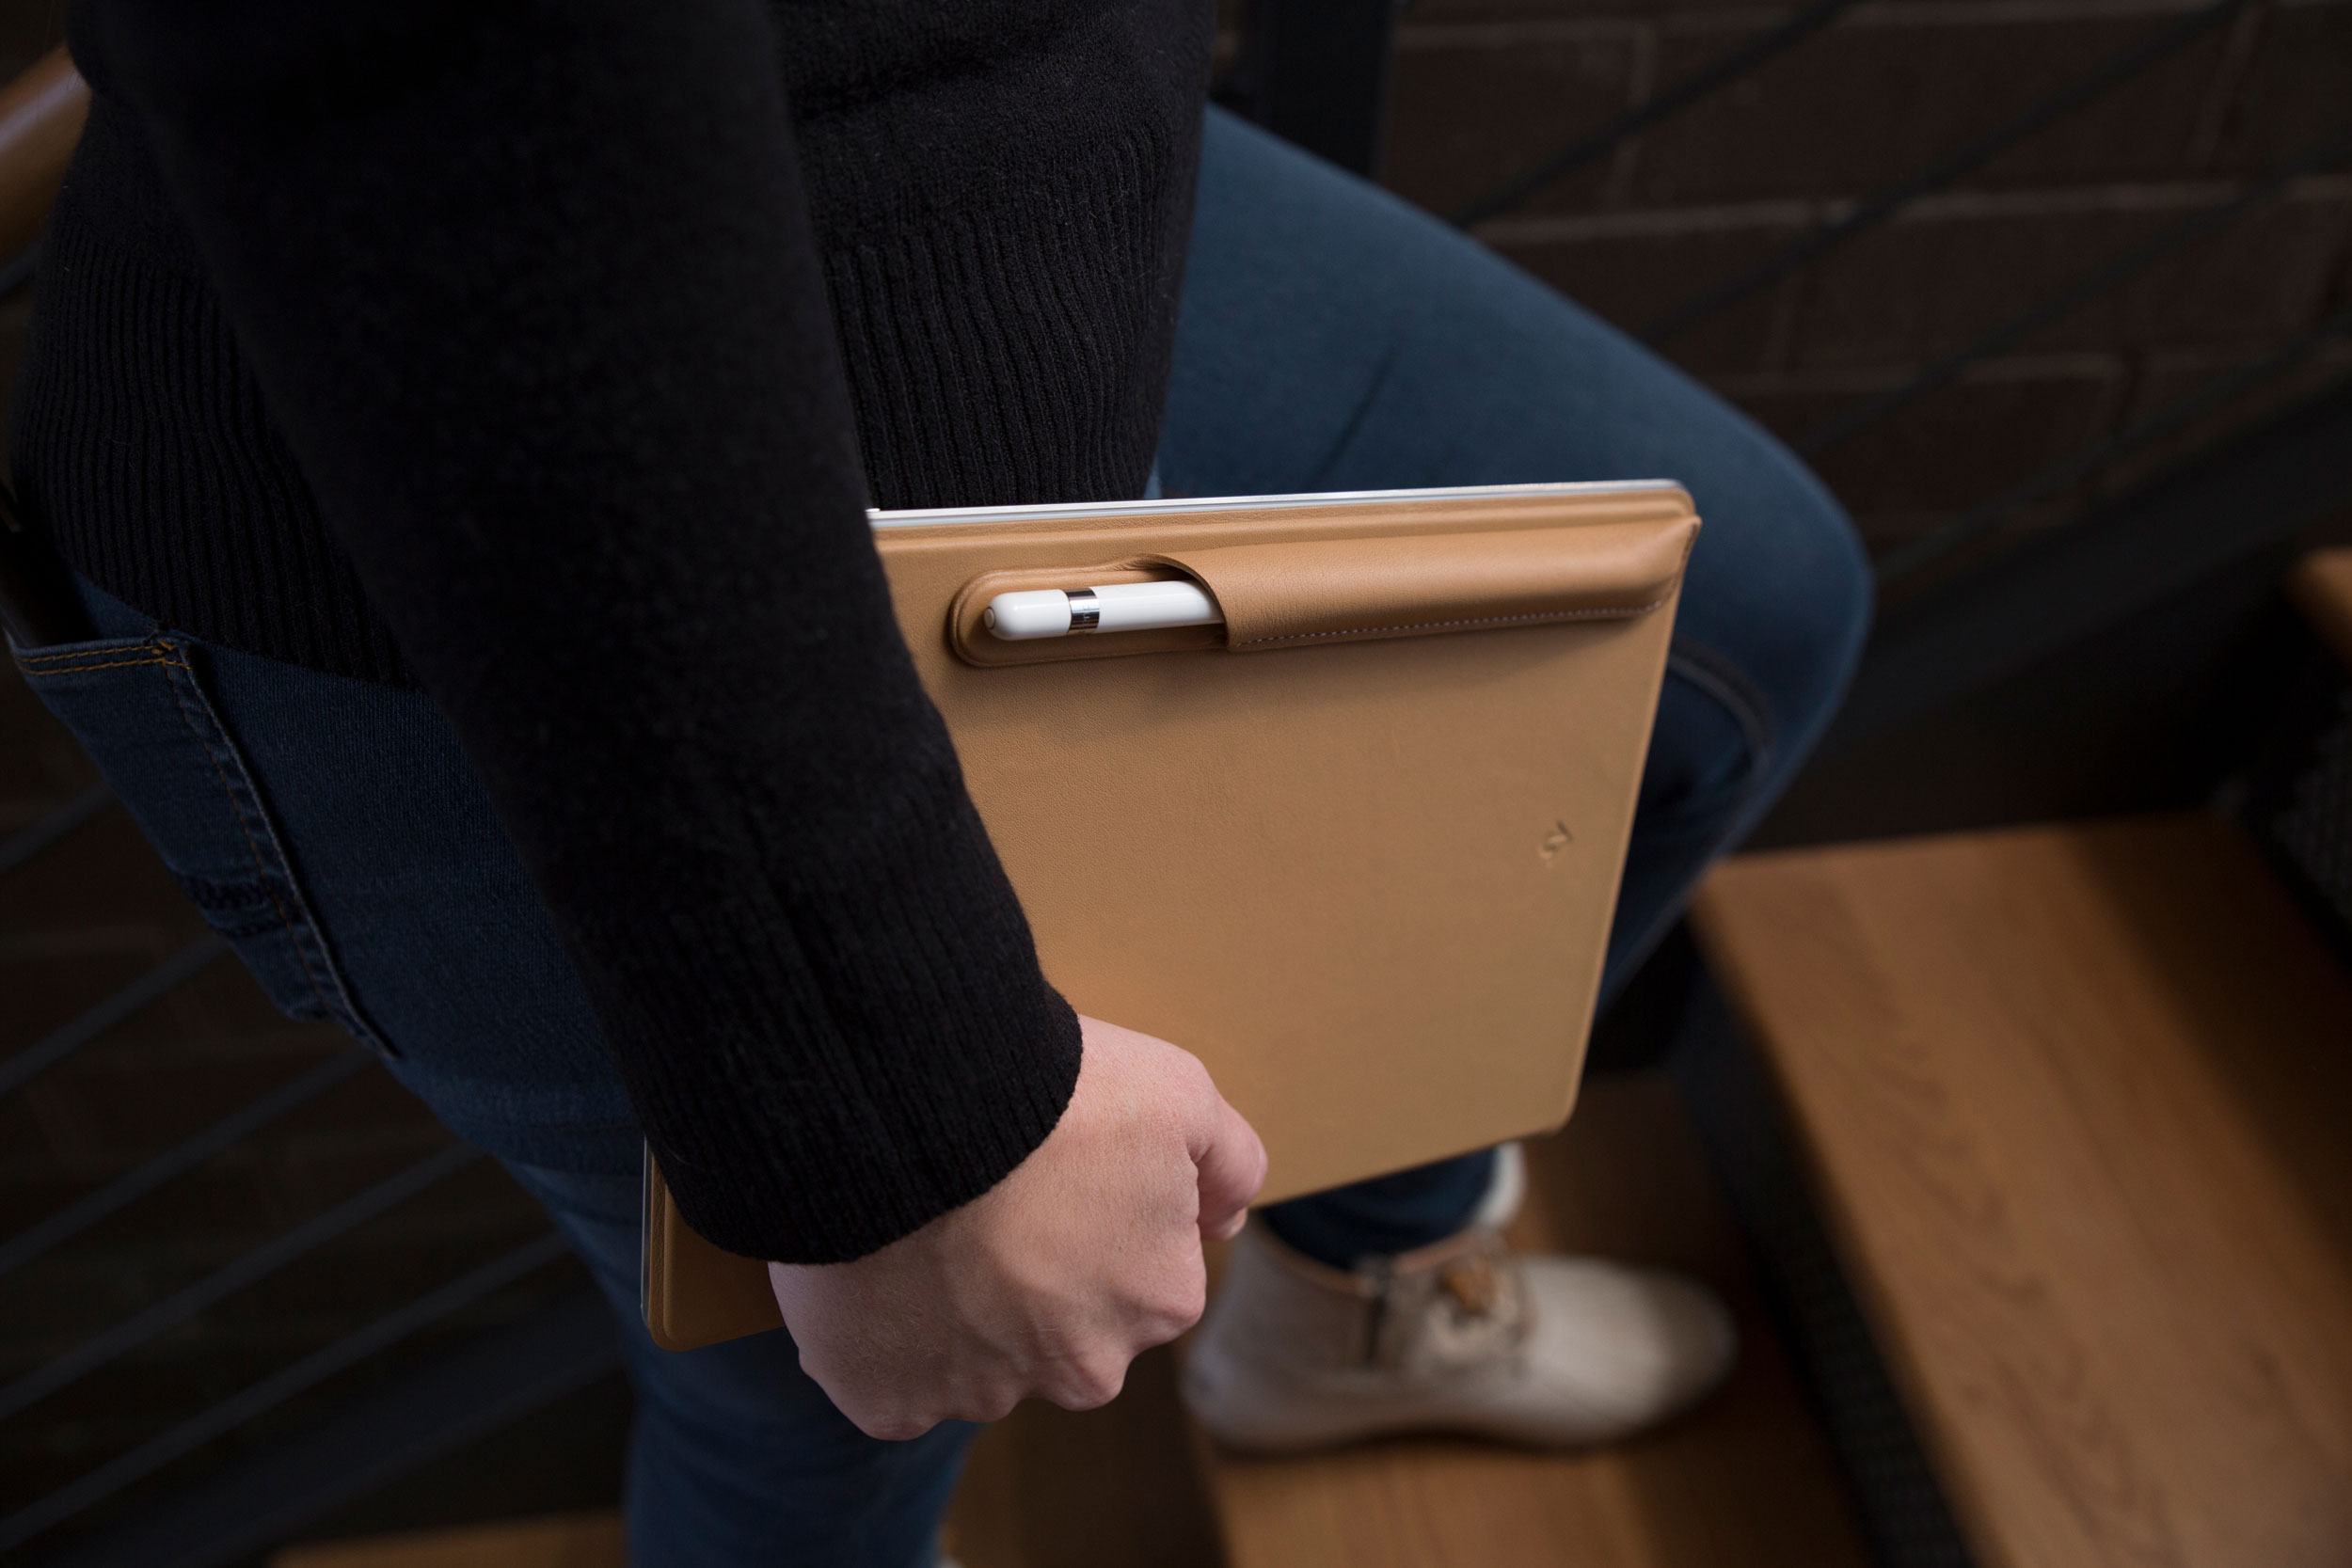 Keep Your Apple Pencil and iPad Pro Together With Twelve South's New PencilSnap